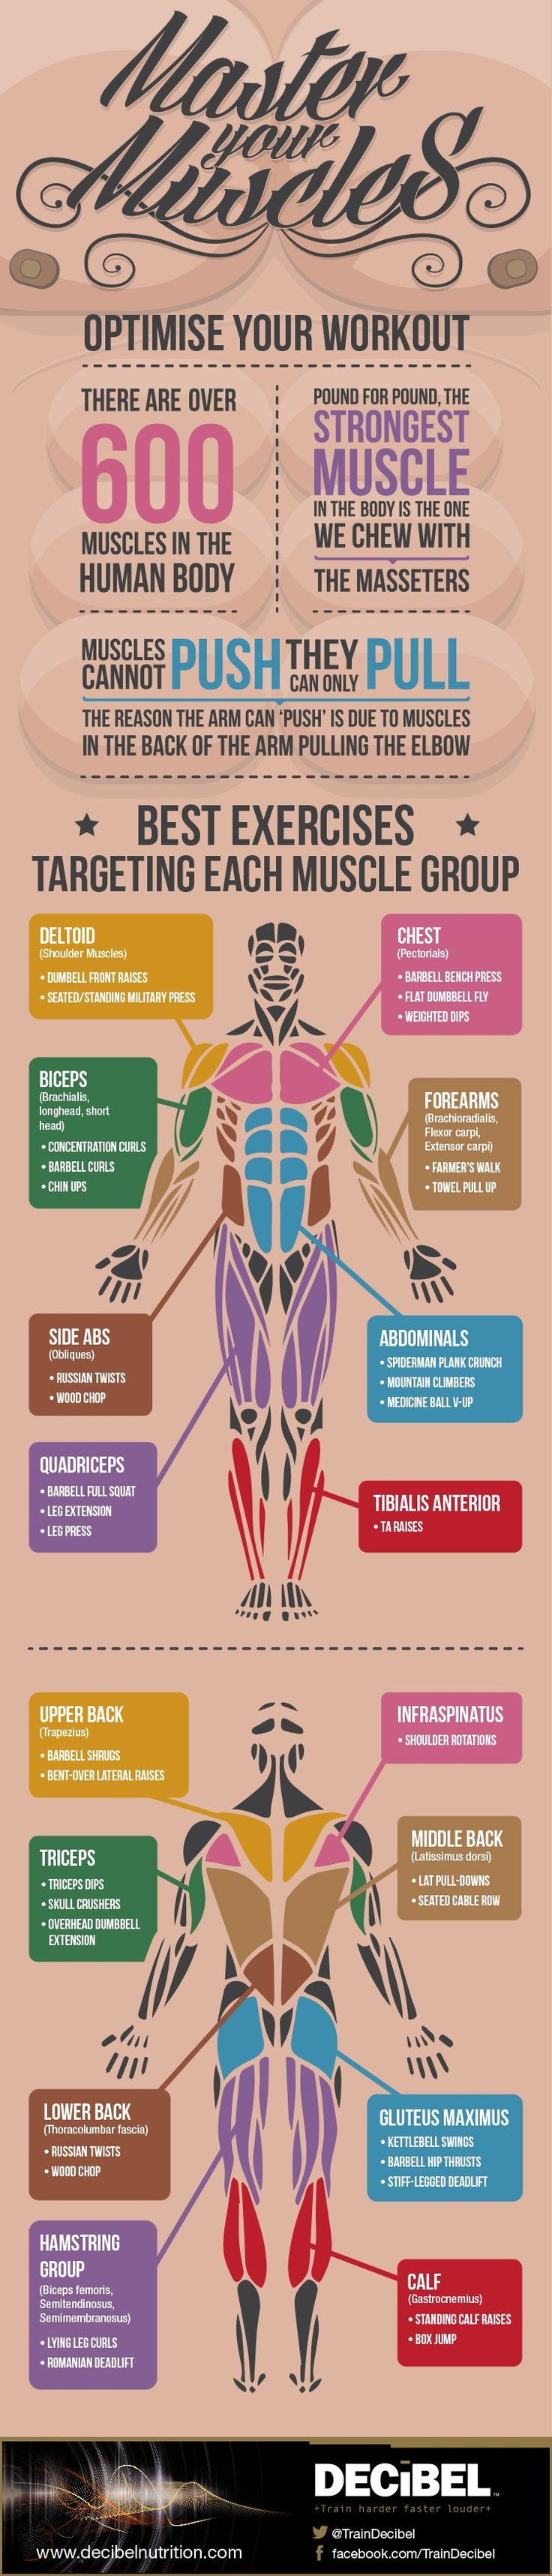 The best exercises for each muscle group. - Imgur